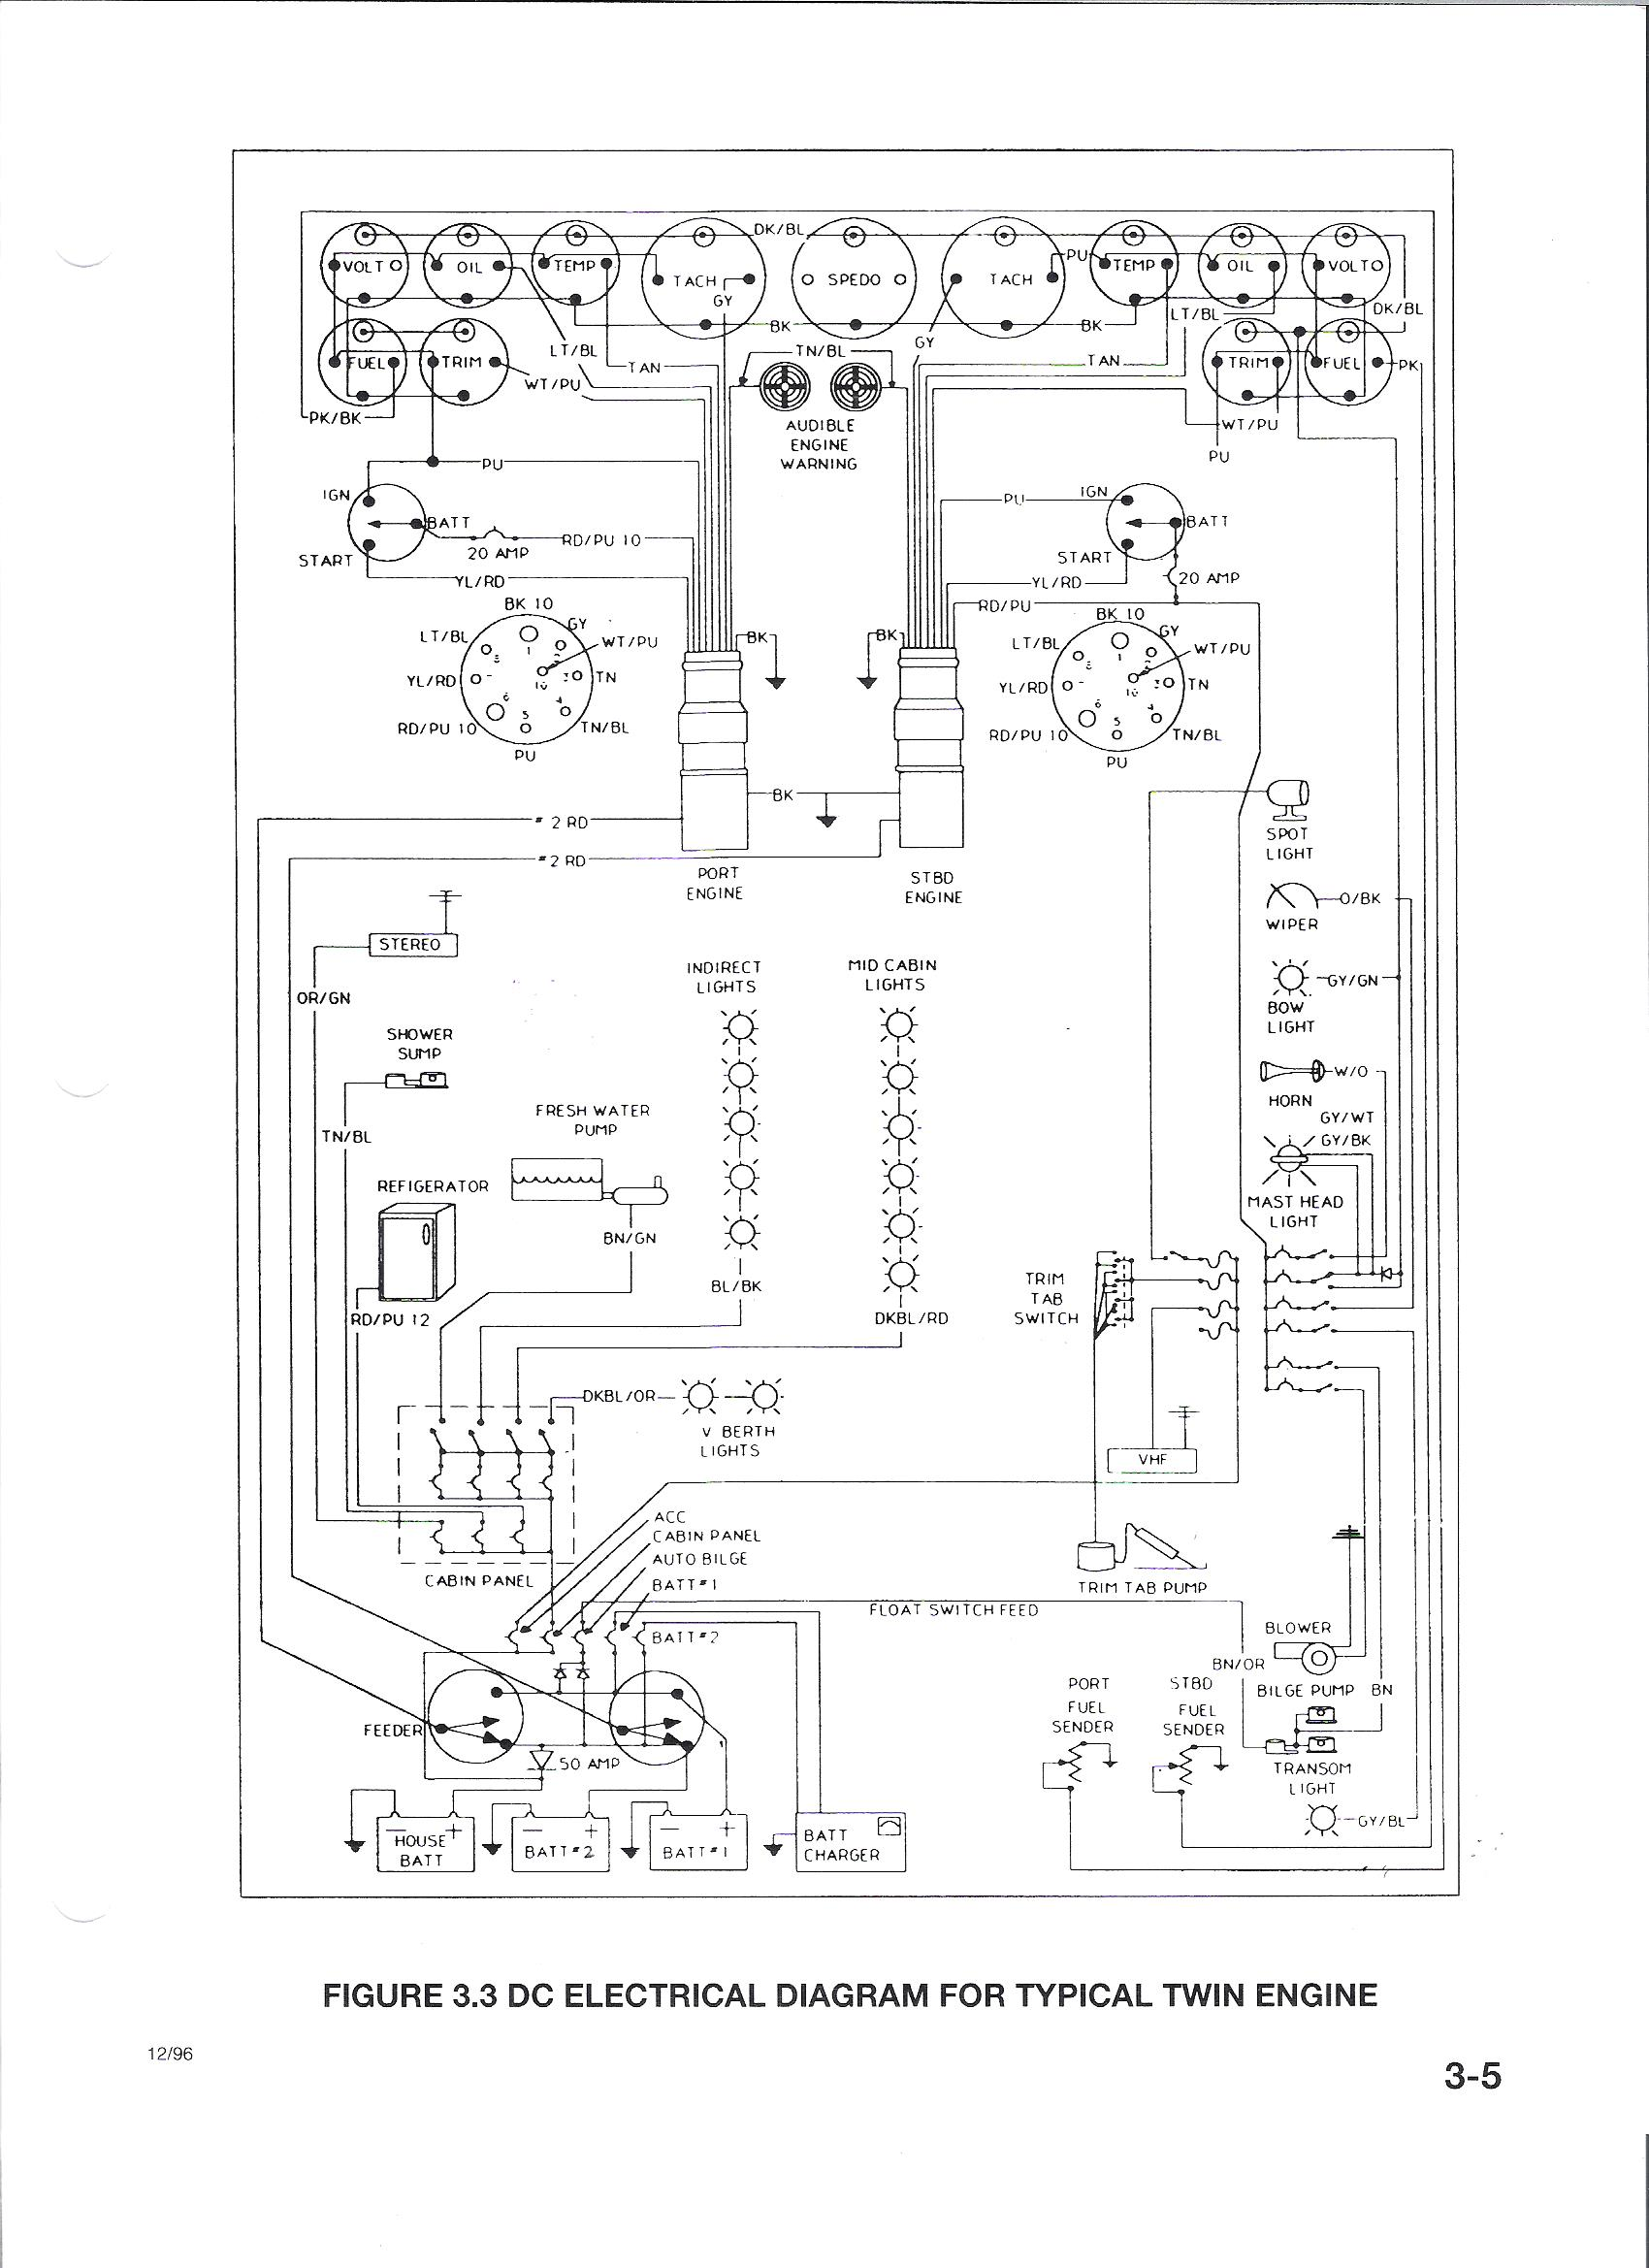 Stratos Boat Wiring Diagram - Wiring Diagrams on